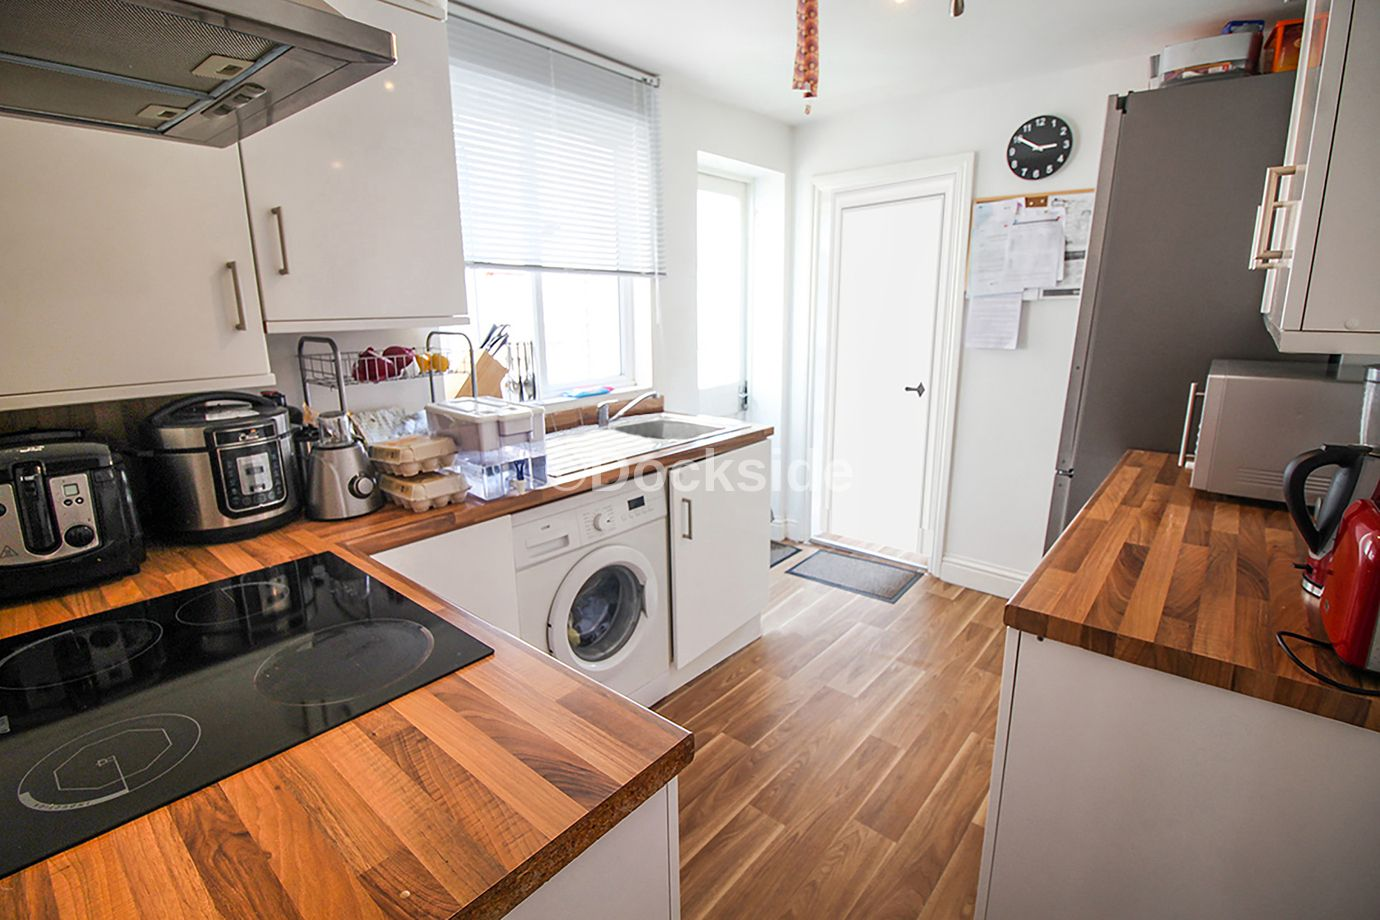 3 bed house for sale in Linden Road, ME7